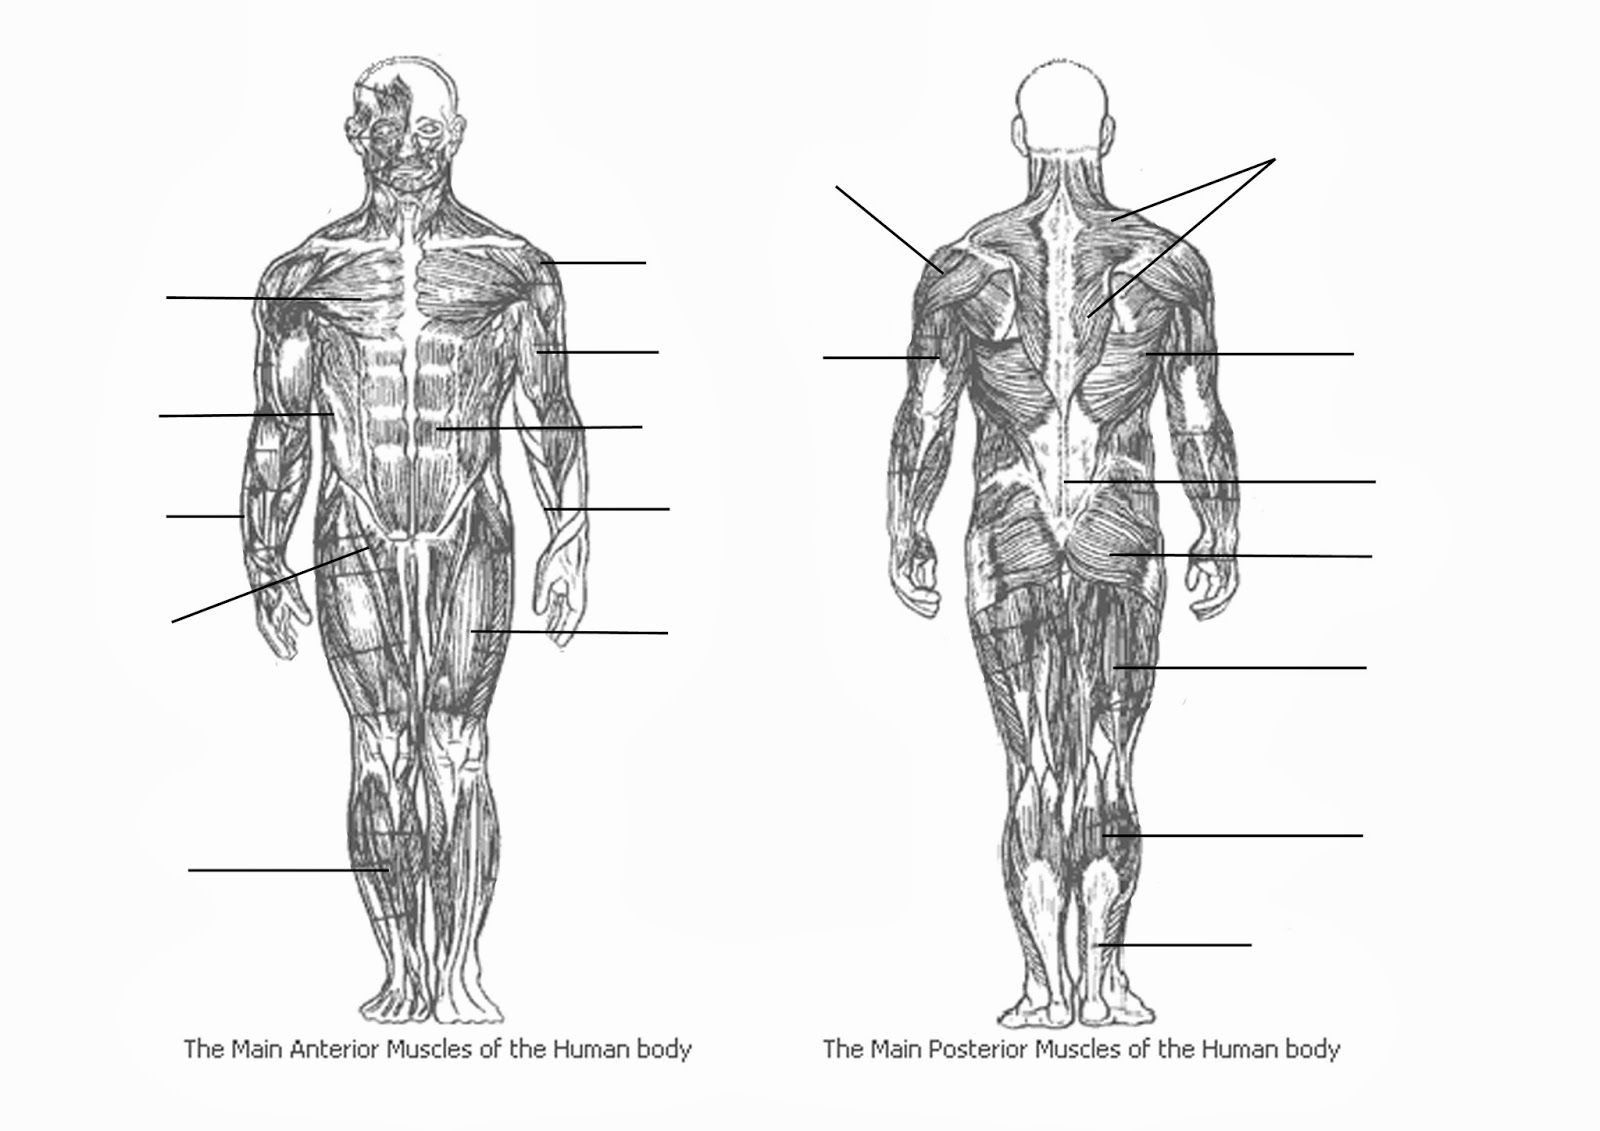 muscle diagram blank muscle diagram blank inspirational body muscles of the body diagram blank muscle diagram [ 1600 x 1131 Pixel ]